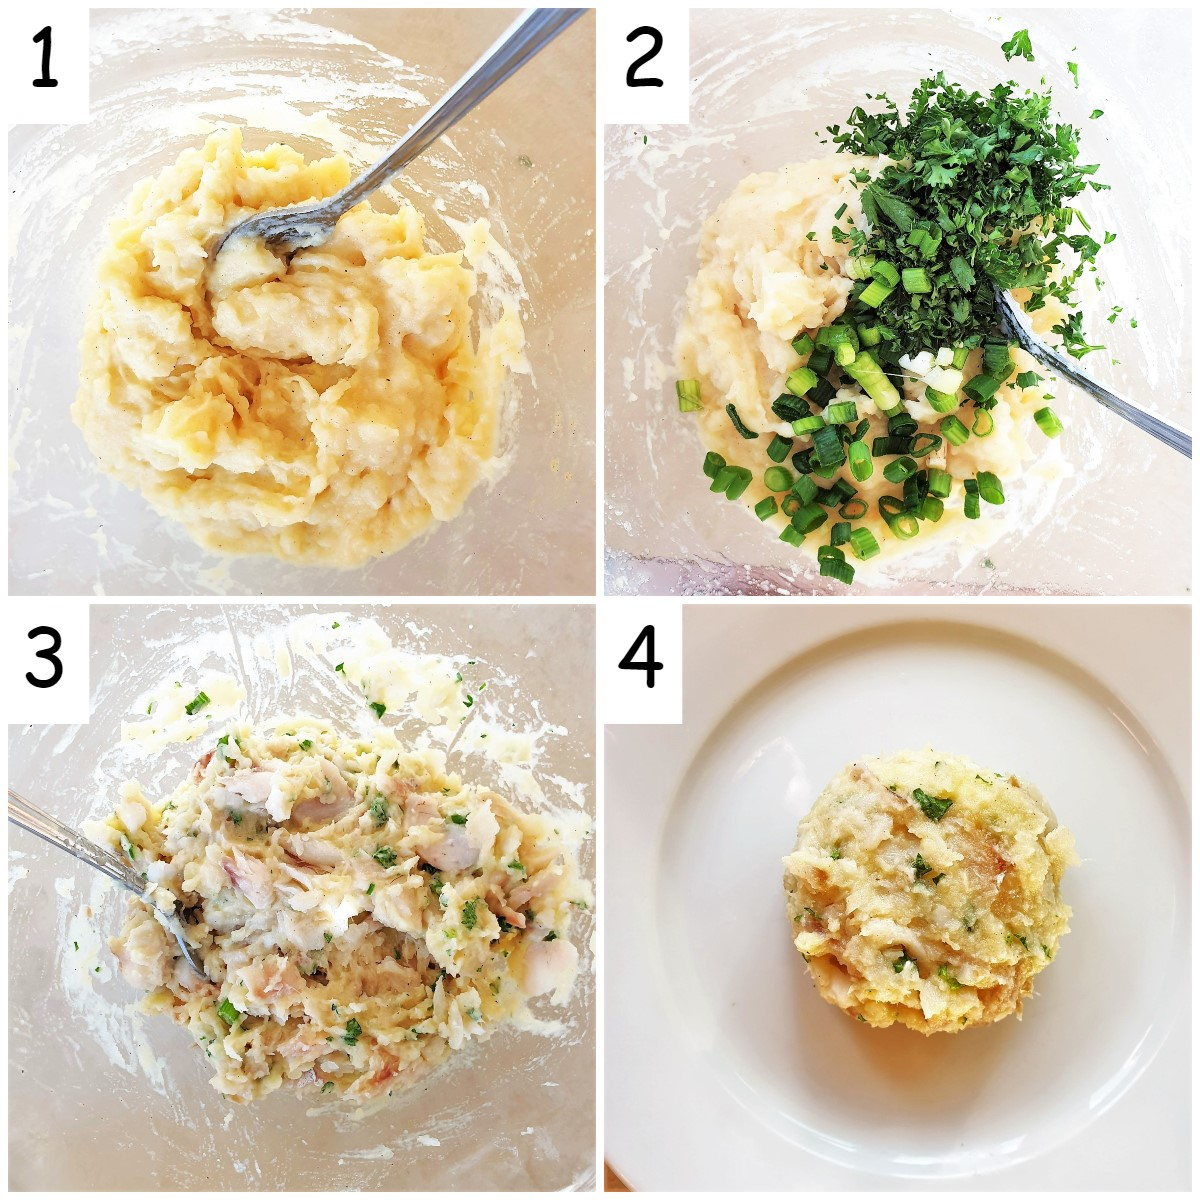 A collage of 4 images showing steps to mix and form the fishcakes.